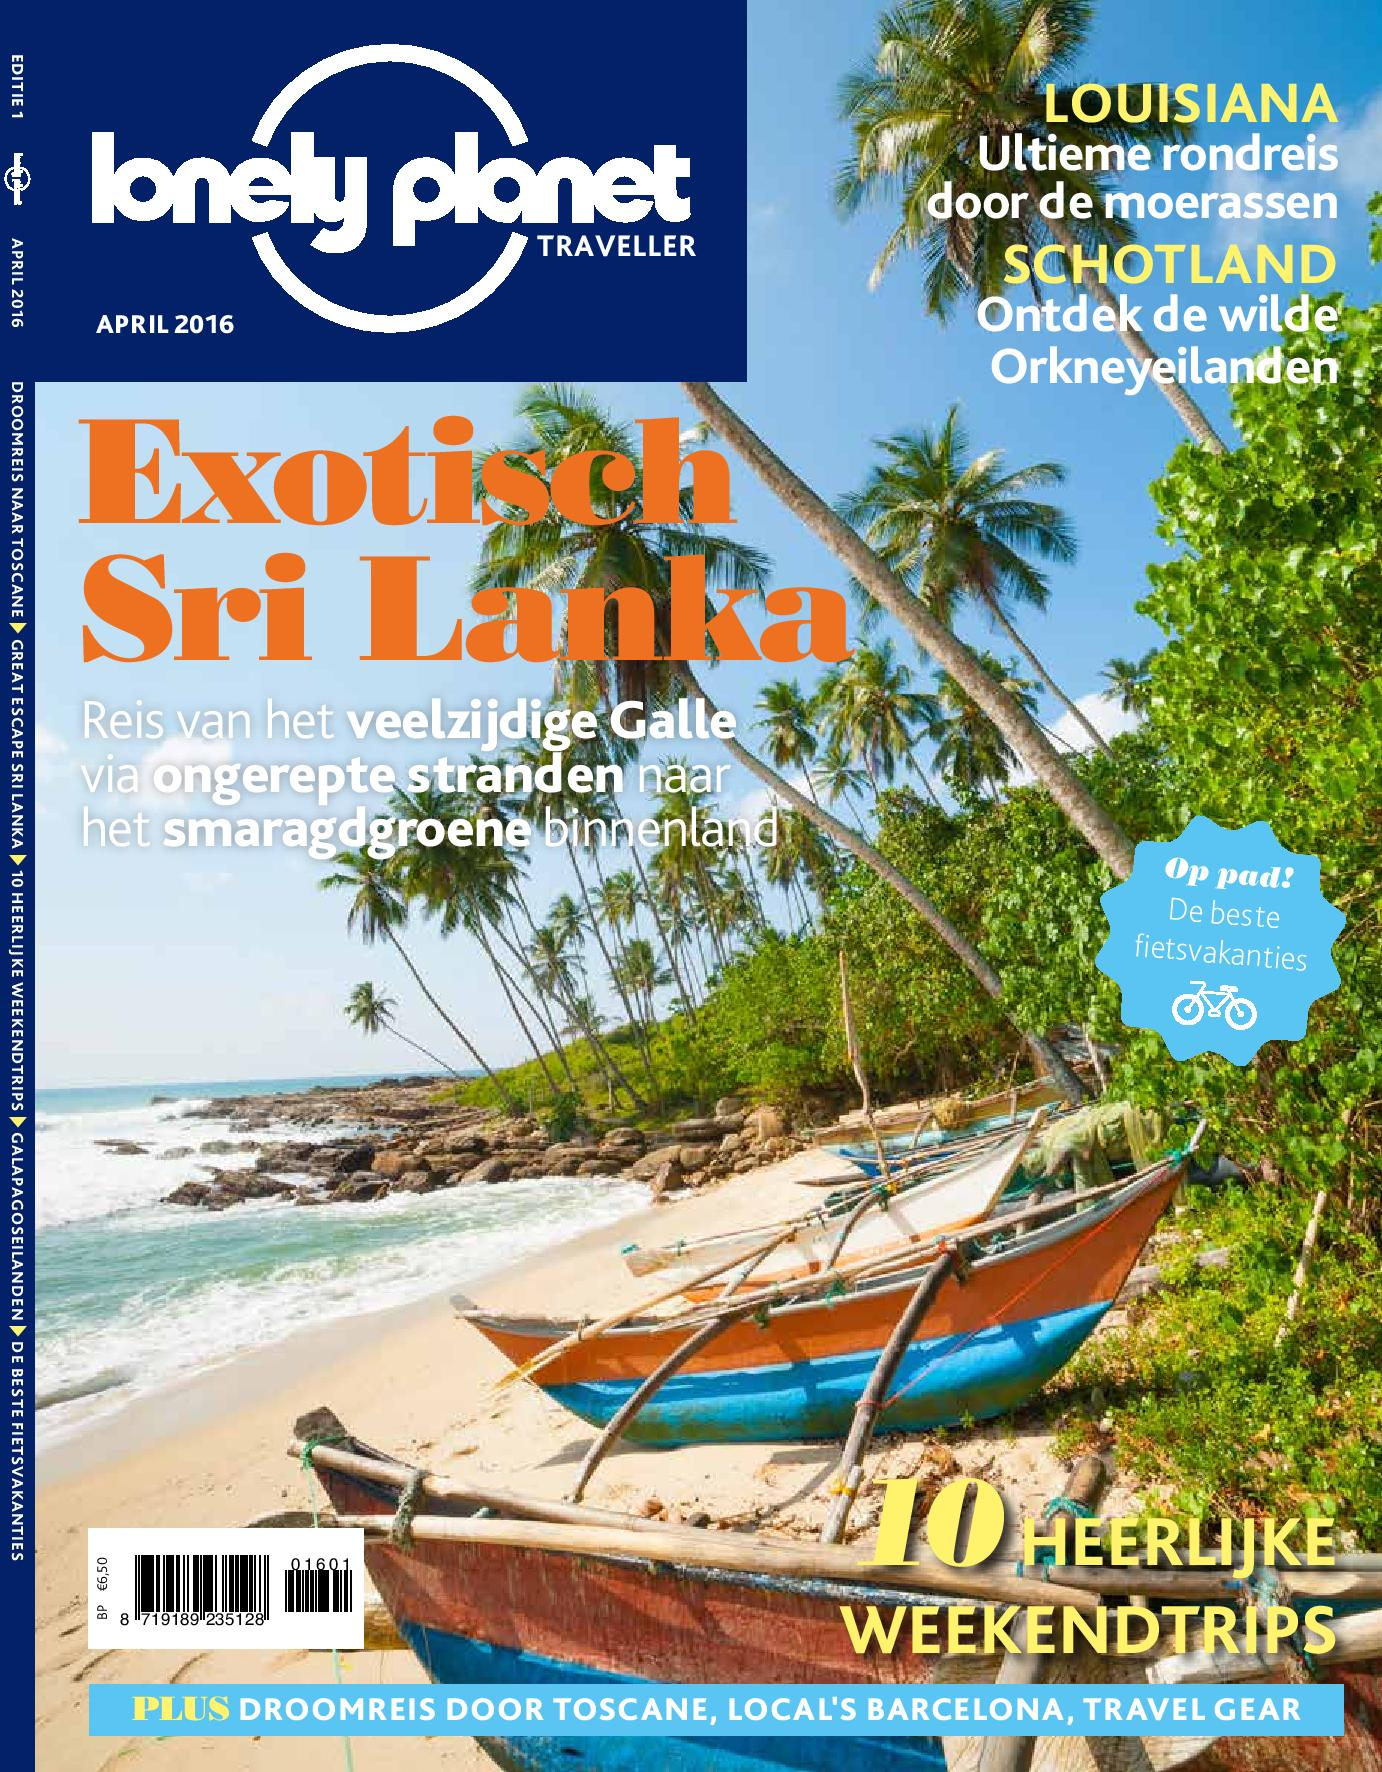 Oct 23, · Lonely Planet's Best in Travel names the top 10 countries, cities, regions and best value destinations that Lonely Planet experts recommend travelers experience next year.